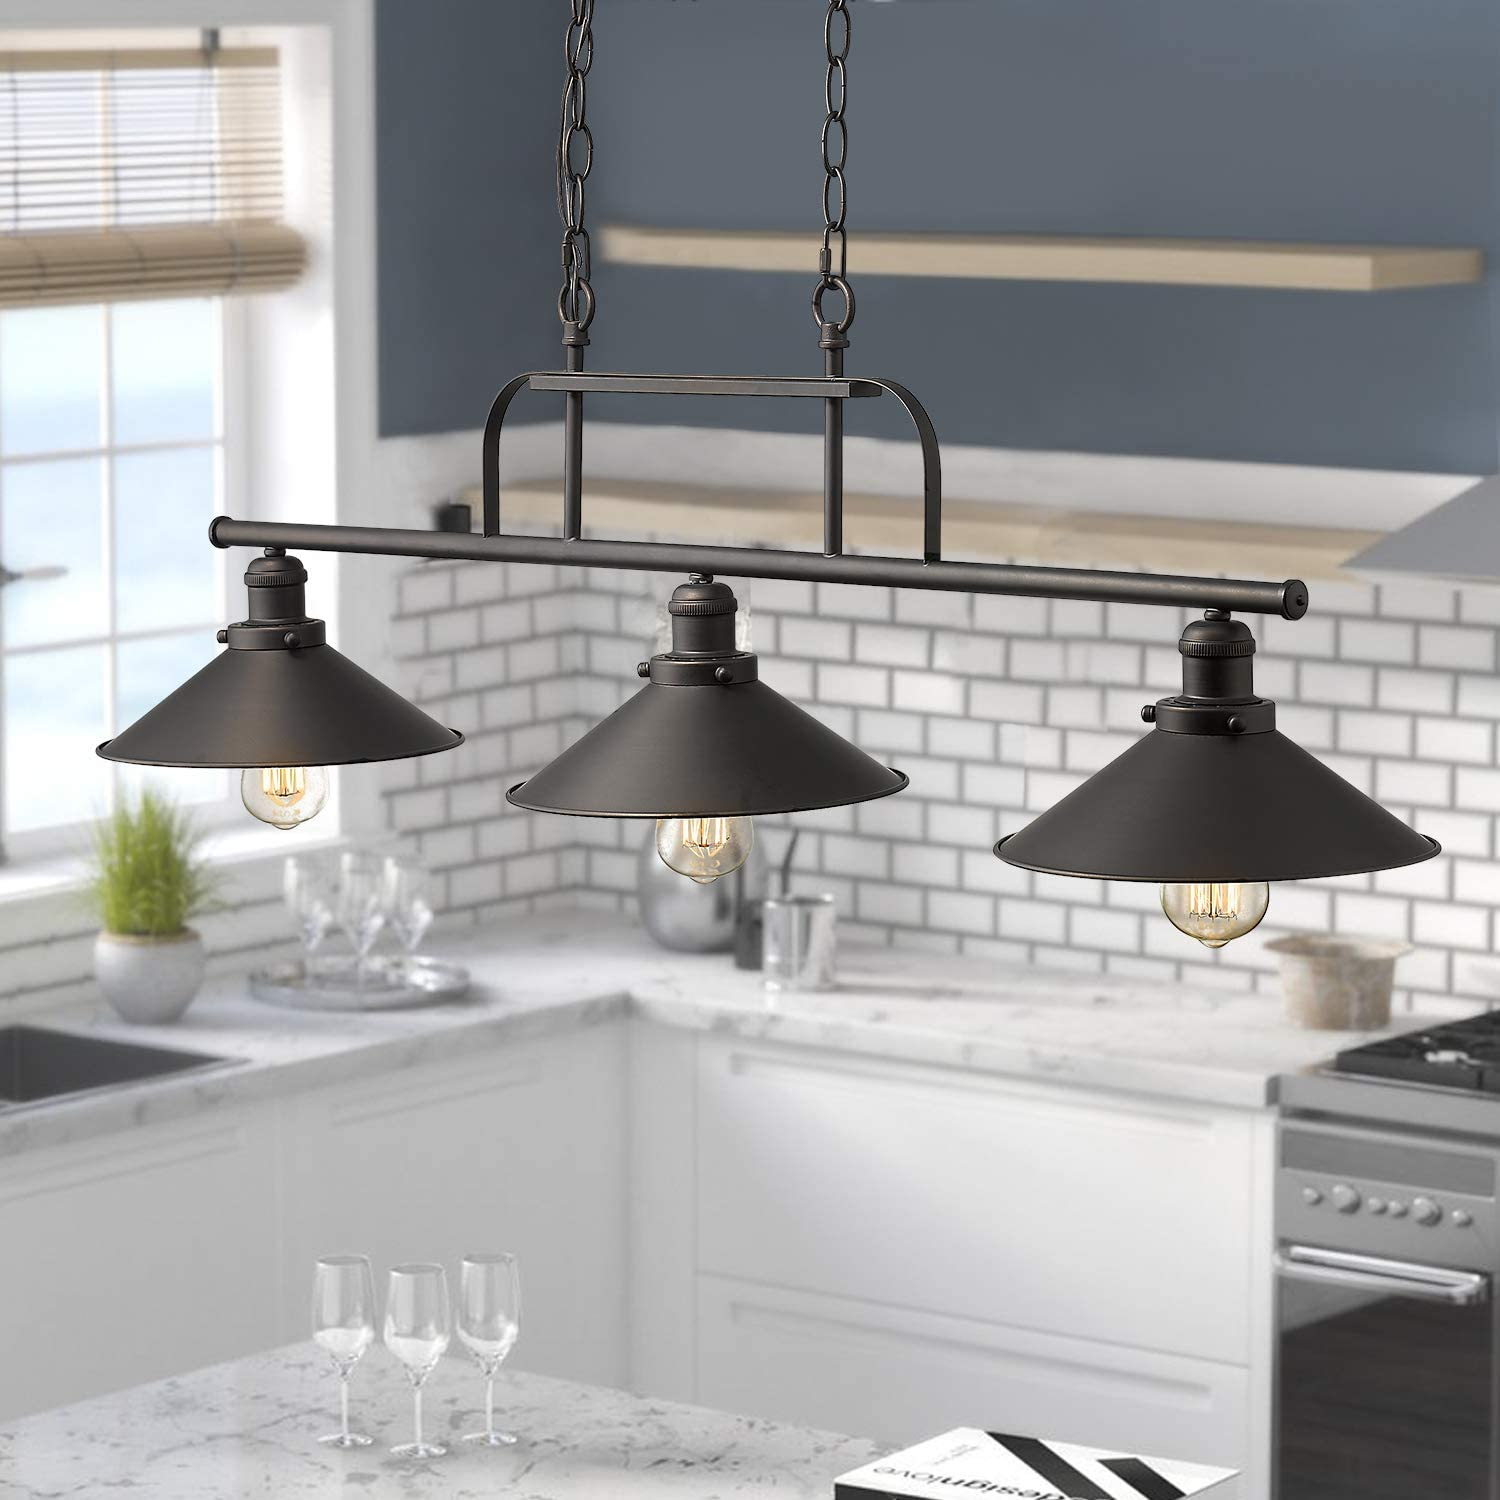 Buy Zeyu Industrial 3 Light Pendant Lighting Vintage Kitchen Island Light With Oil Rubbed Bronze Finish 102 3 Orb Online In Indonesia B07vbd5gq5